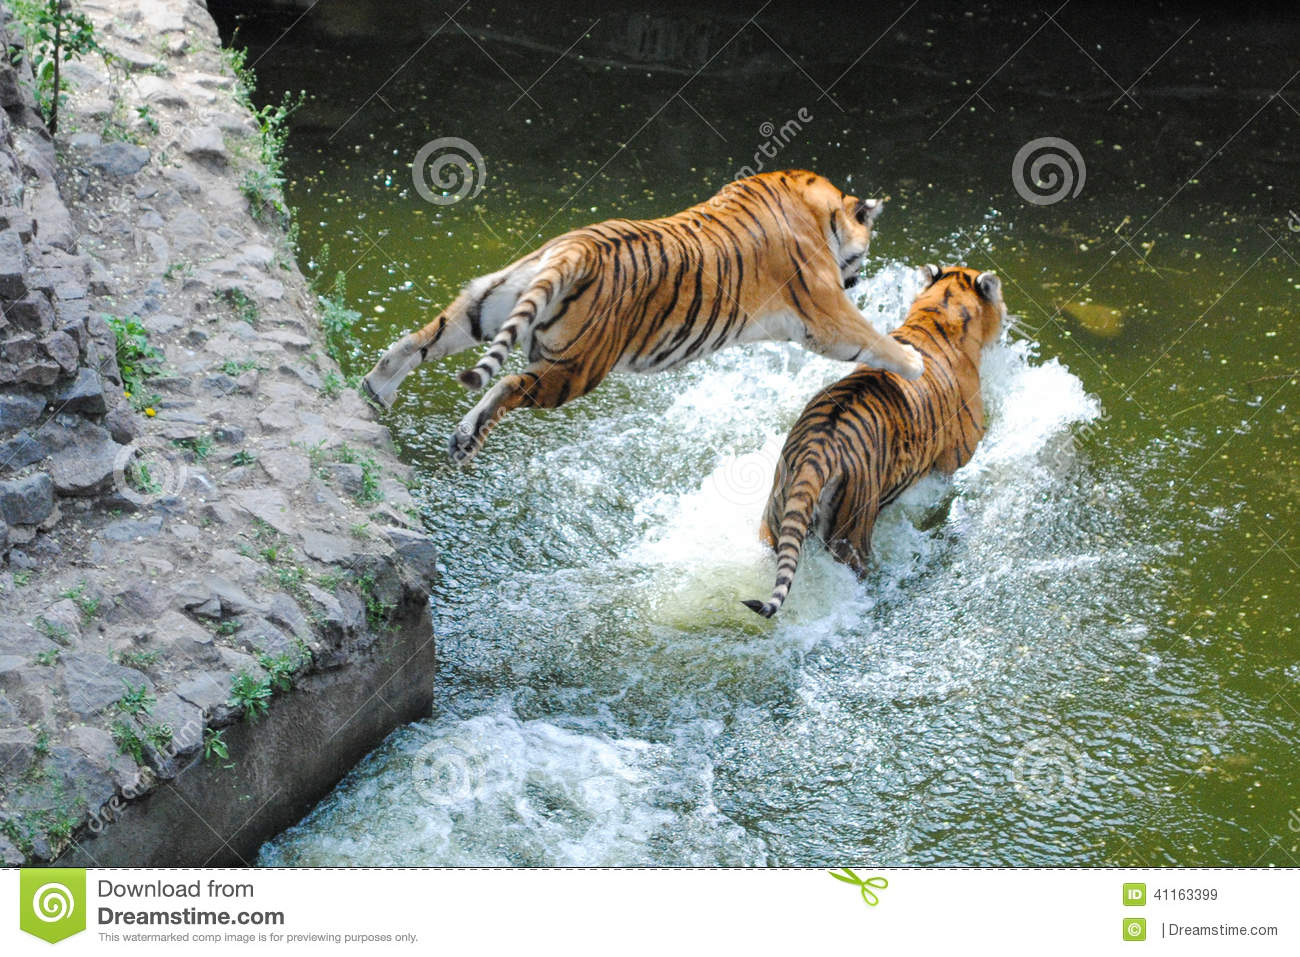 Danger 3d Wallpaper Download Tiger Jumping On Tiger In Water Stock Photo Image 41163399